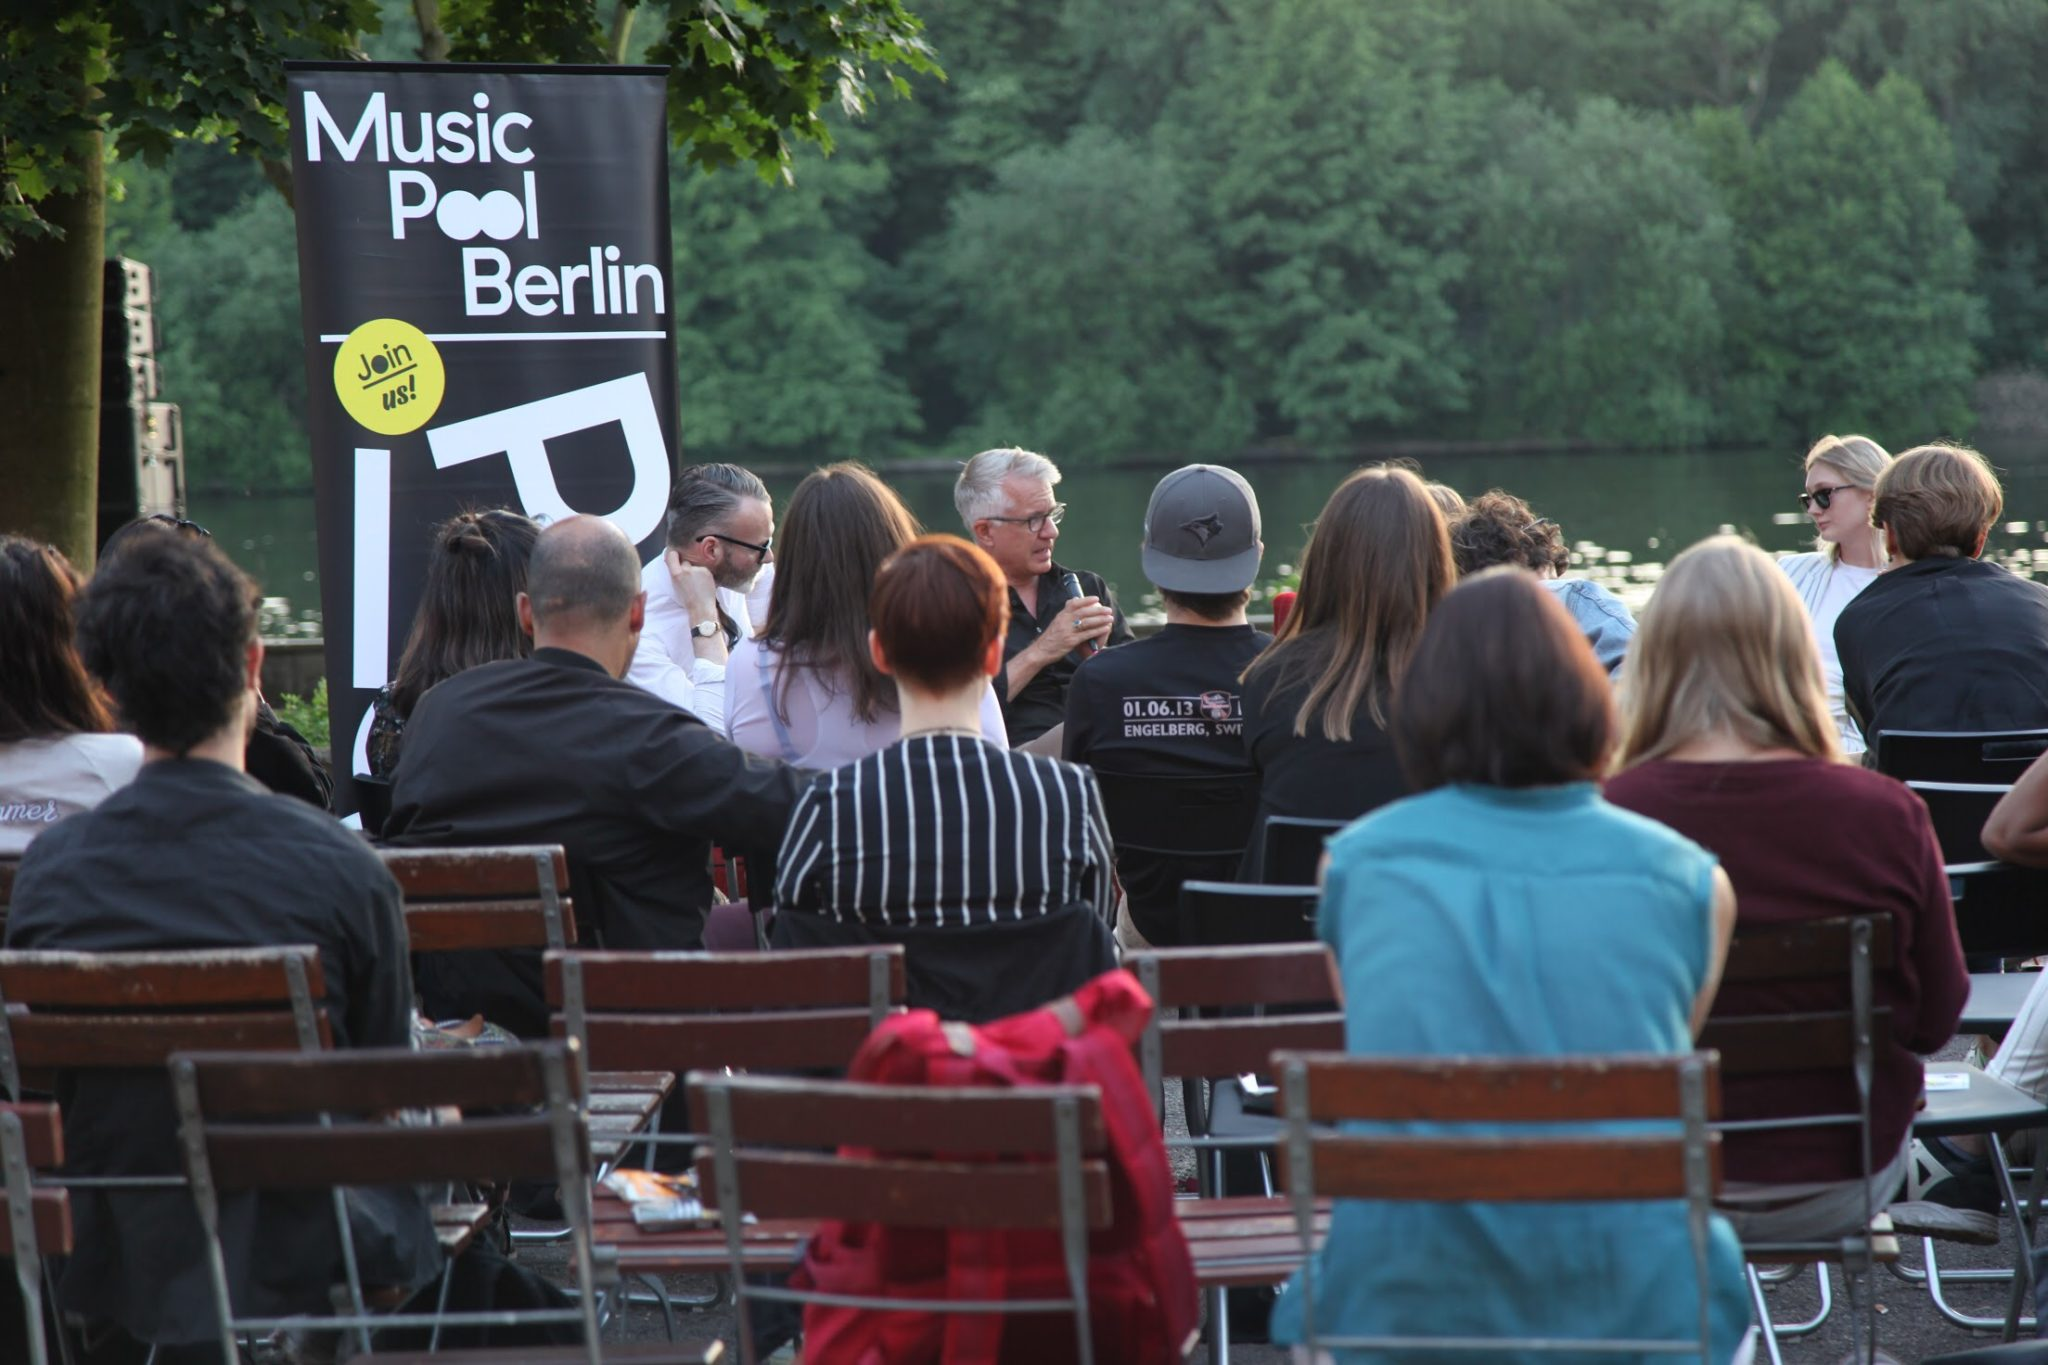 5 More Things We Learnt at Our Music Pool Berlin Mental Health Panel